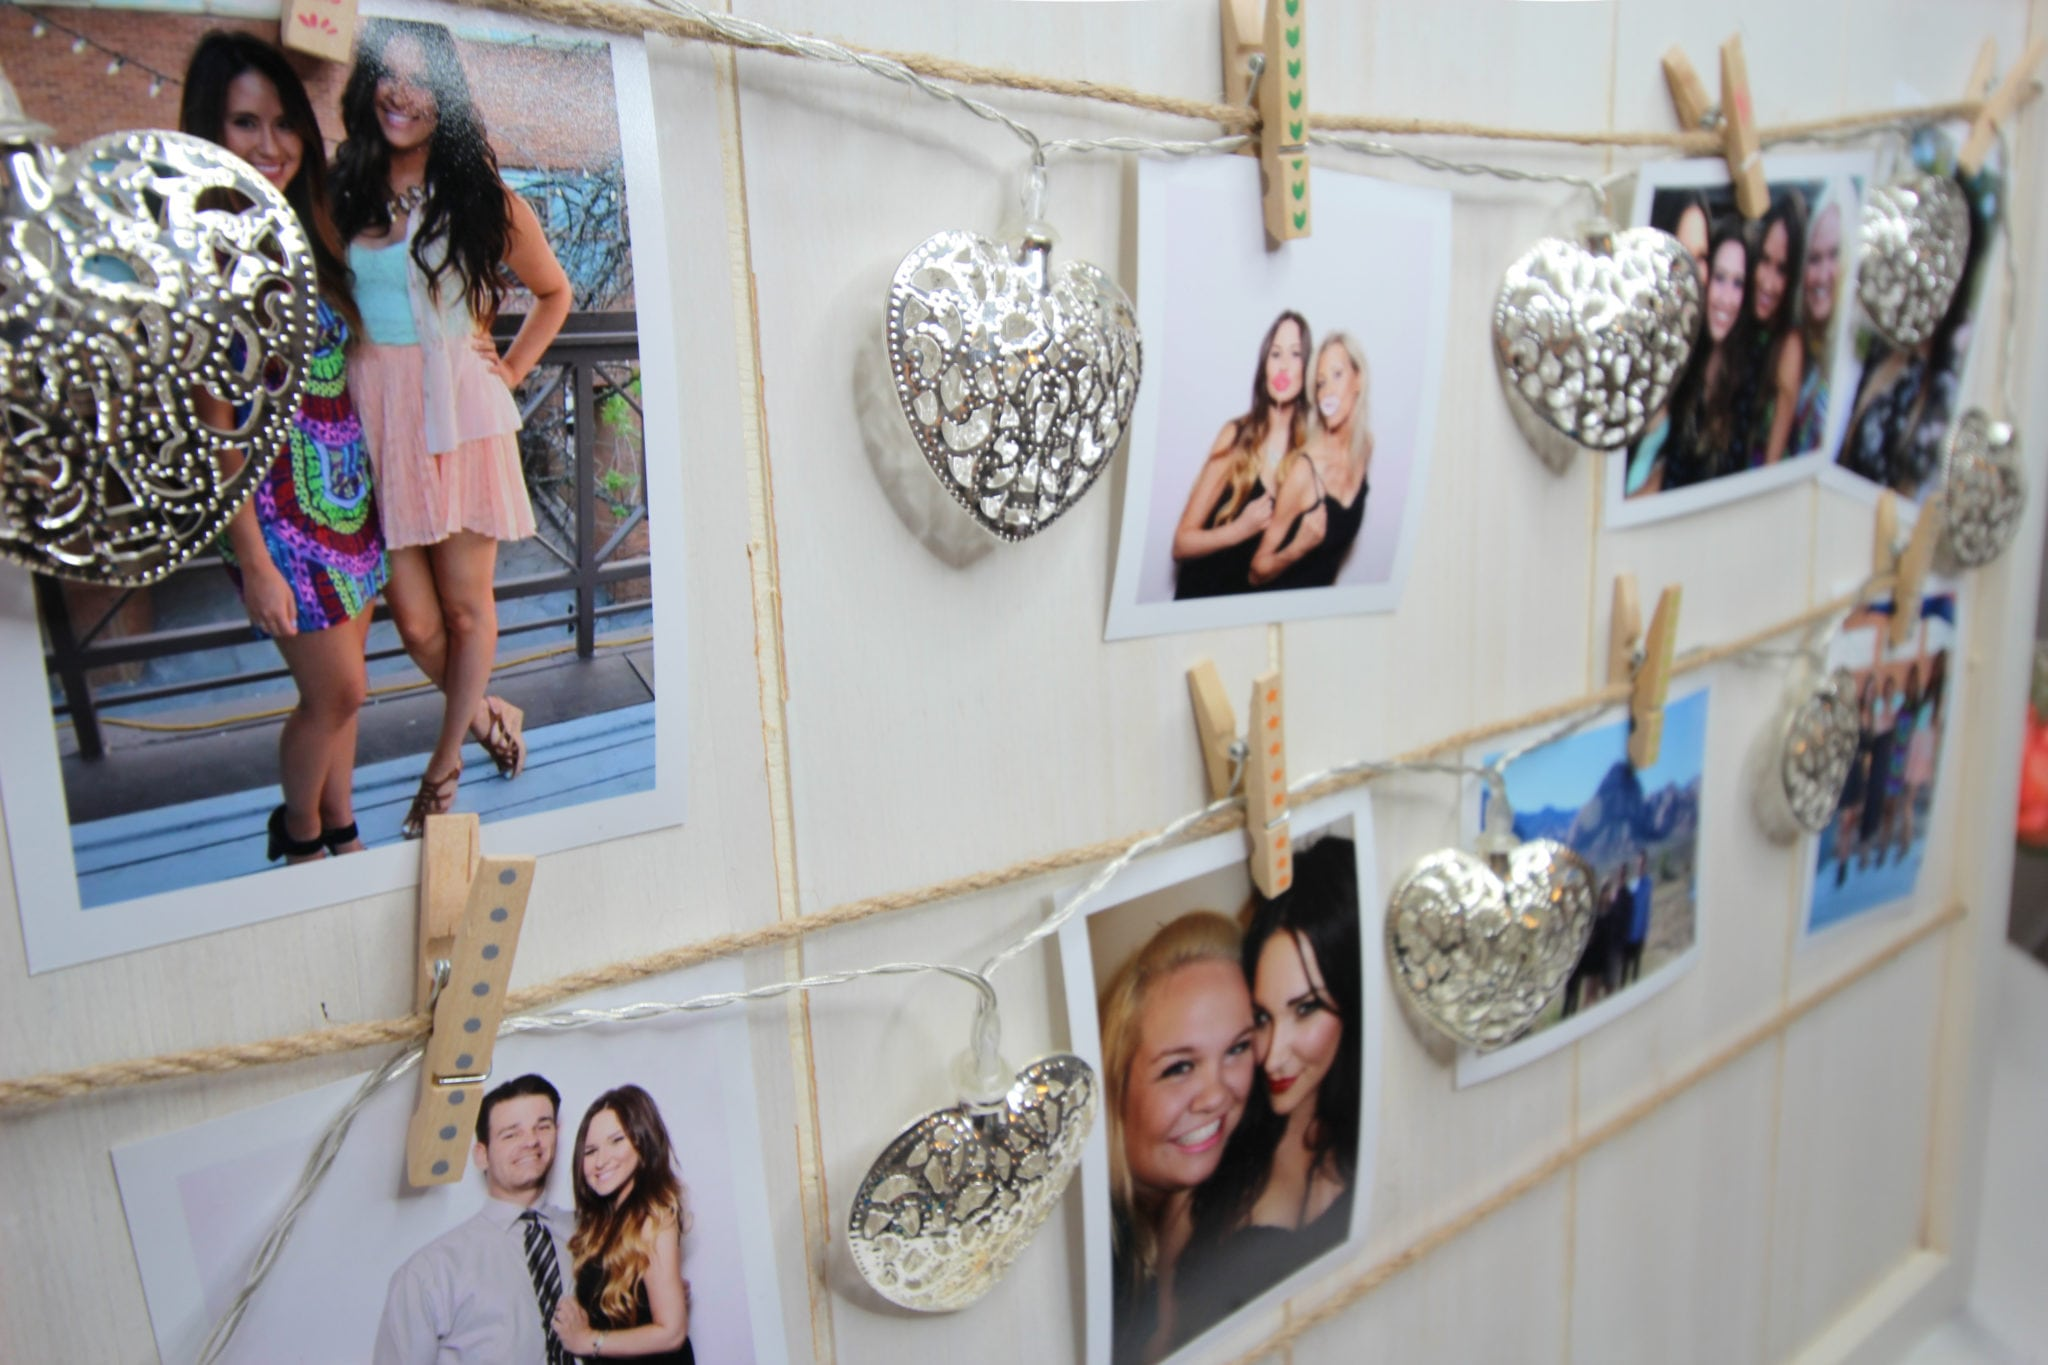 Mash Elle photo memory board | DIY photos | hanging photos in your room | dorm ideas | easy DIY | polaroid photos